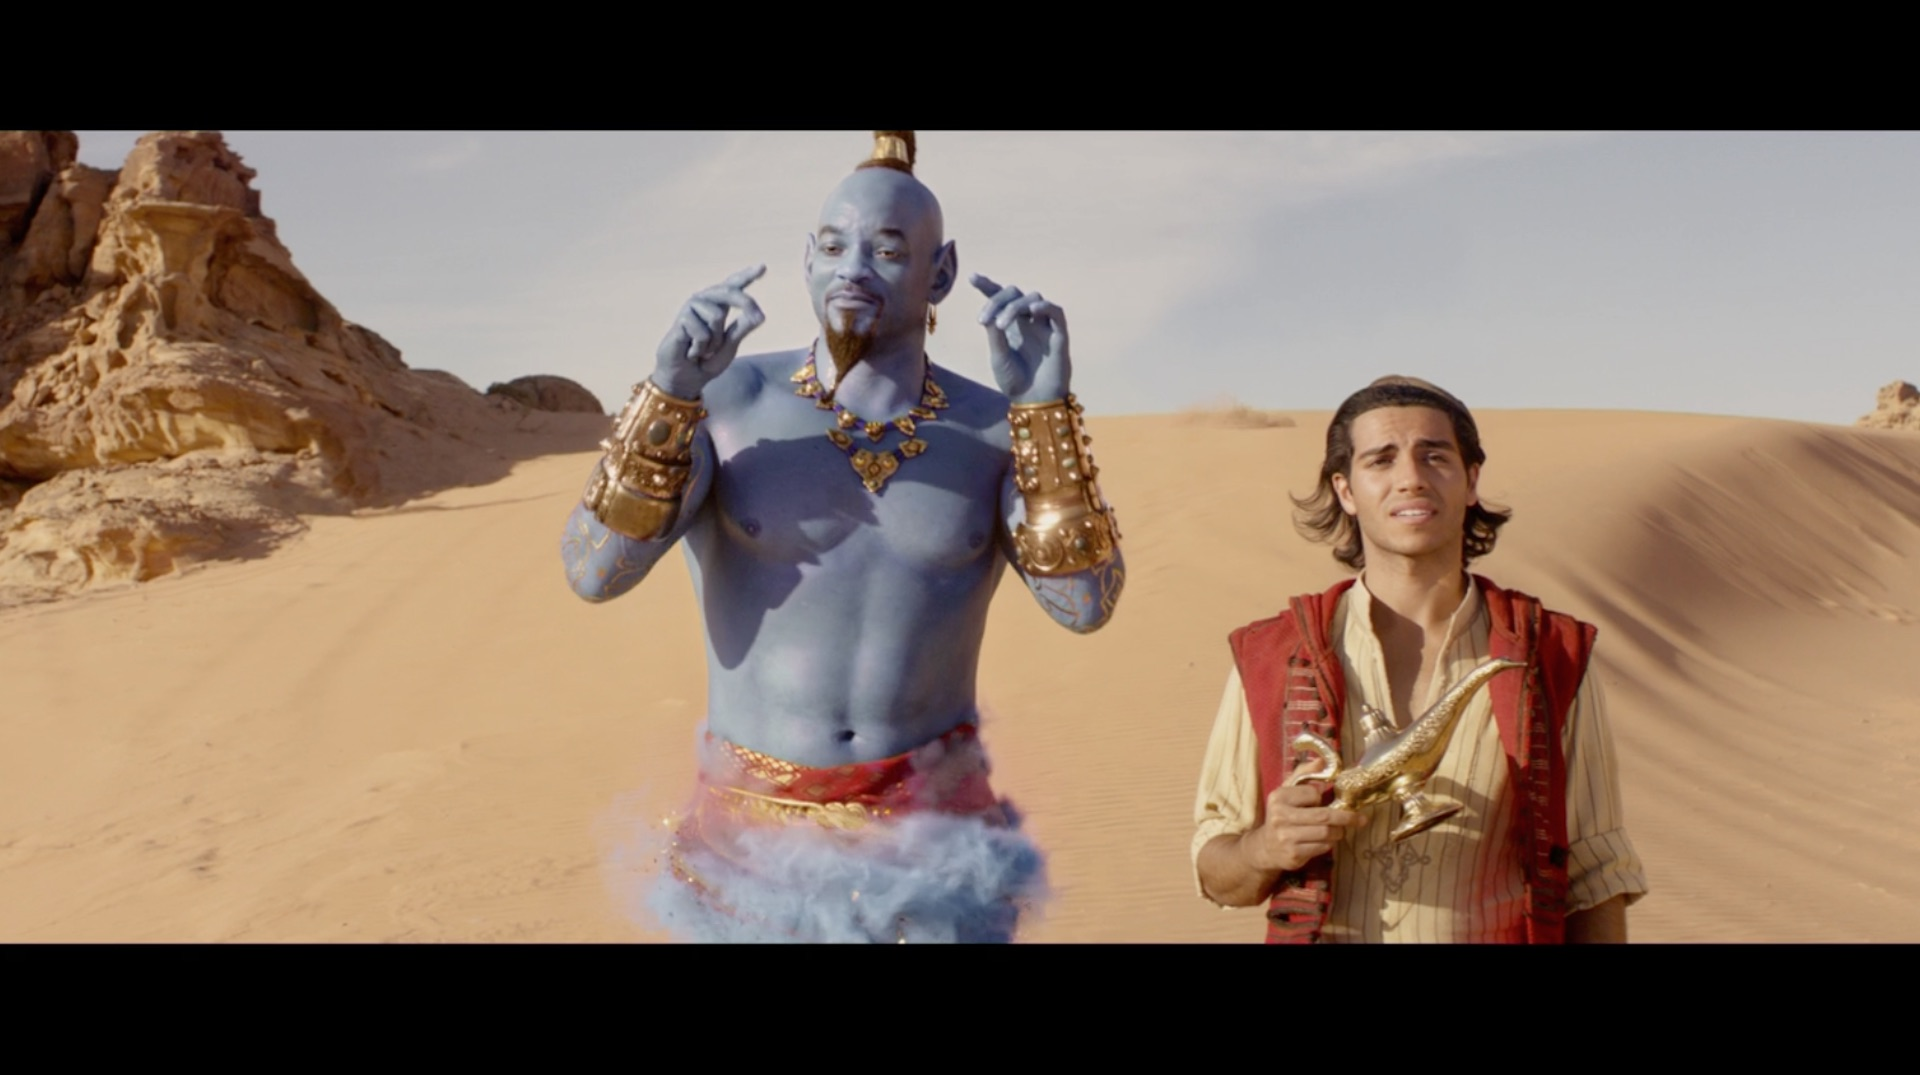 Aladdin' trailer: Will Smith is not blue, Jafar is not scary